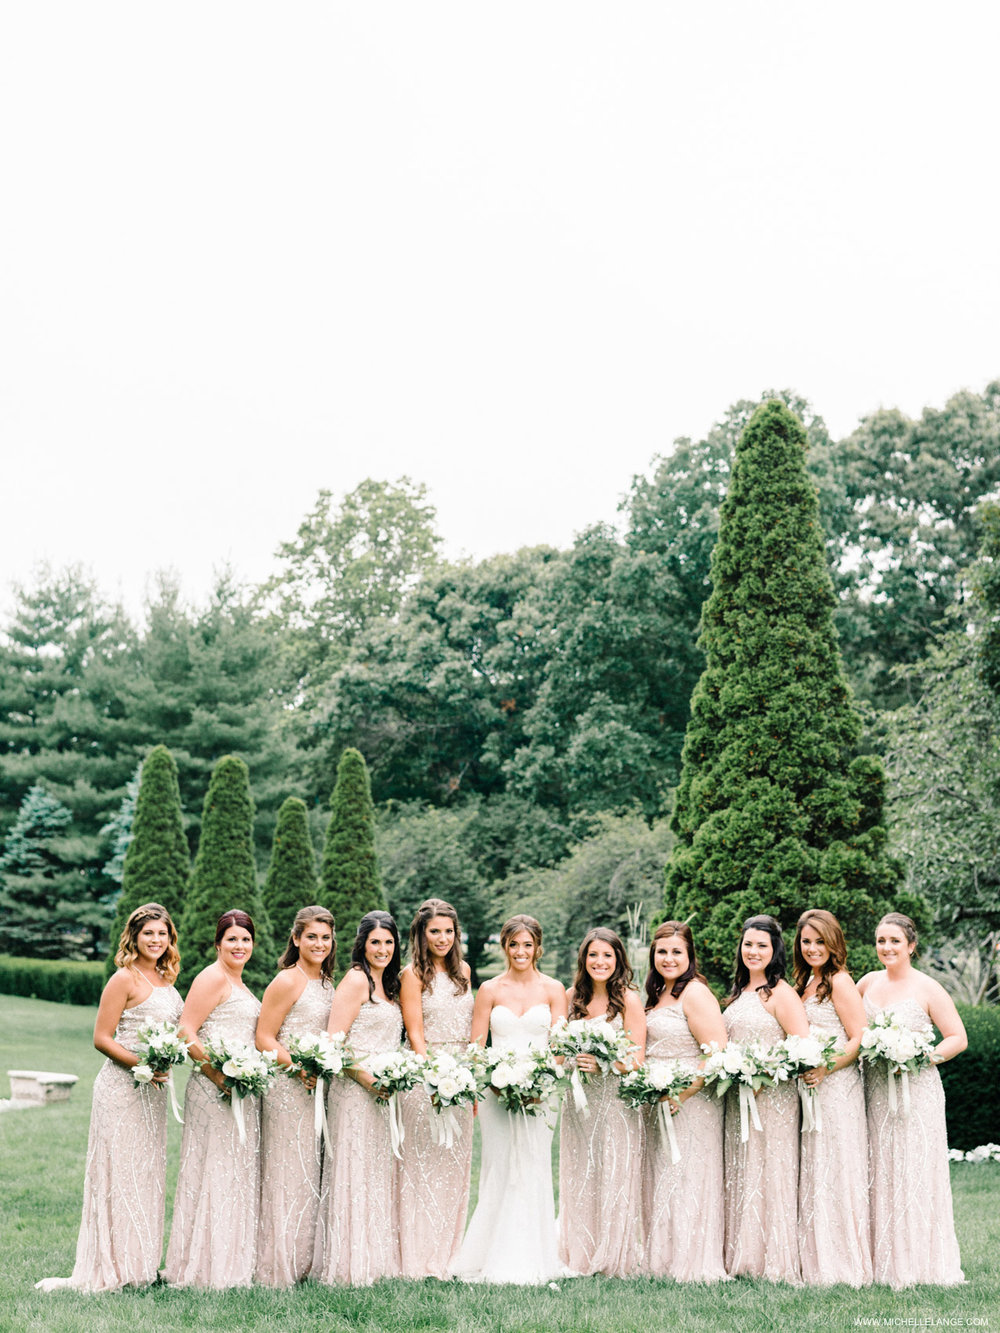 NY Wedding Photographer with Bridesmaids in Adrianna Papell